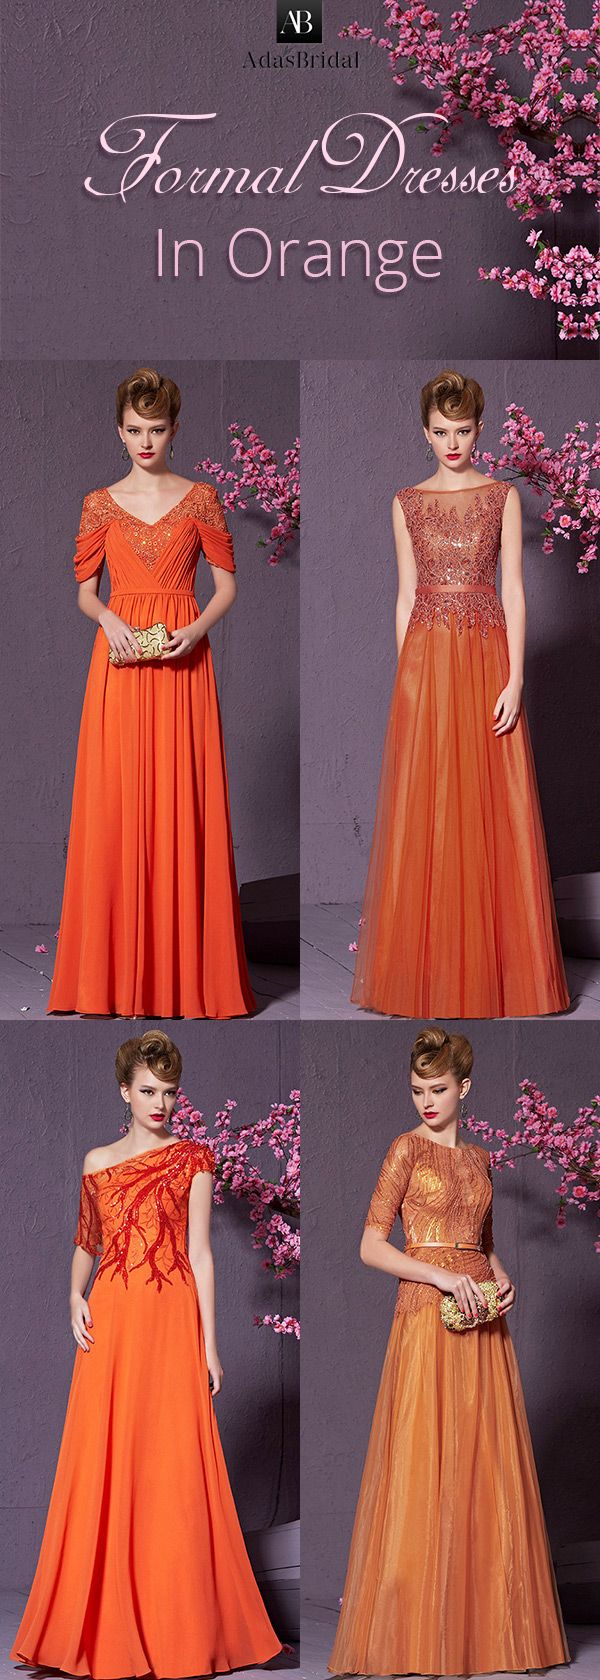 1000  ideas about Orange Formal Dresses on Pinterest  Lace formal ...